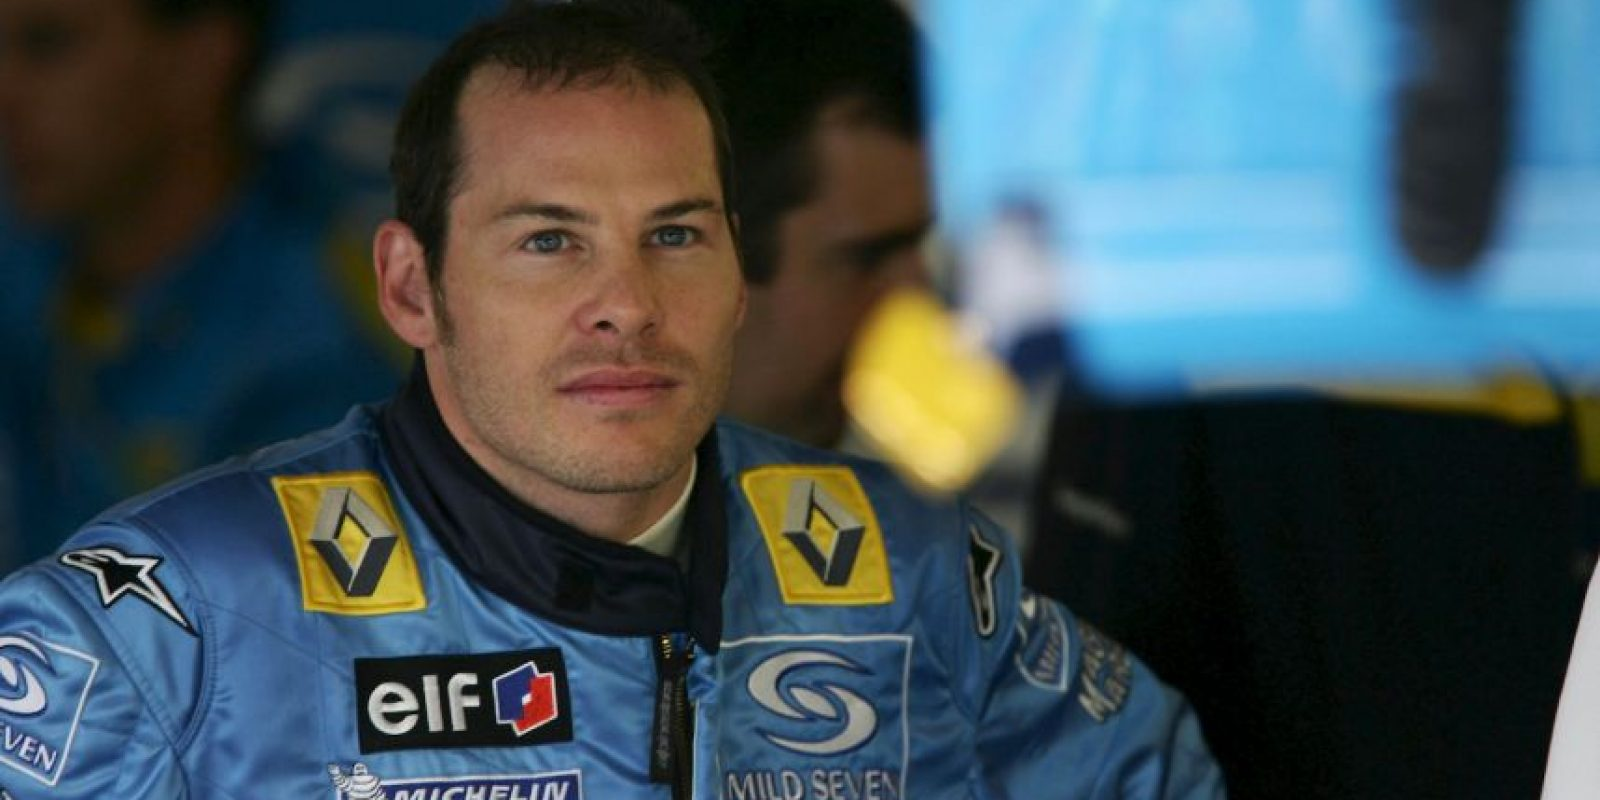 12. Jacques Villeneuve (Canadá) Foto: Getty Images